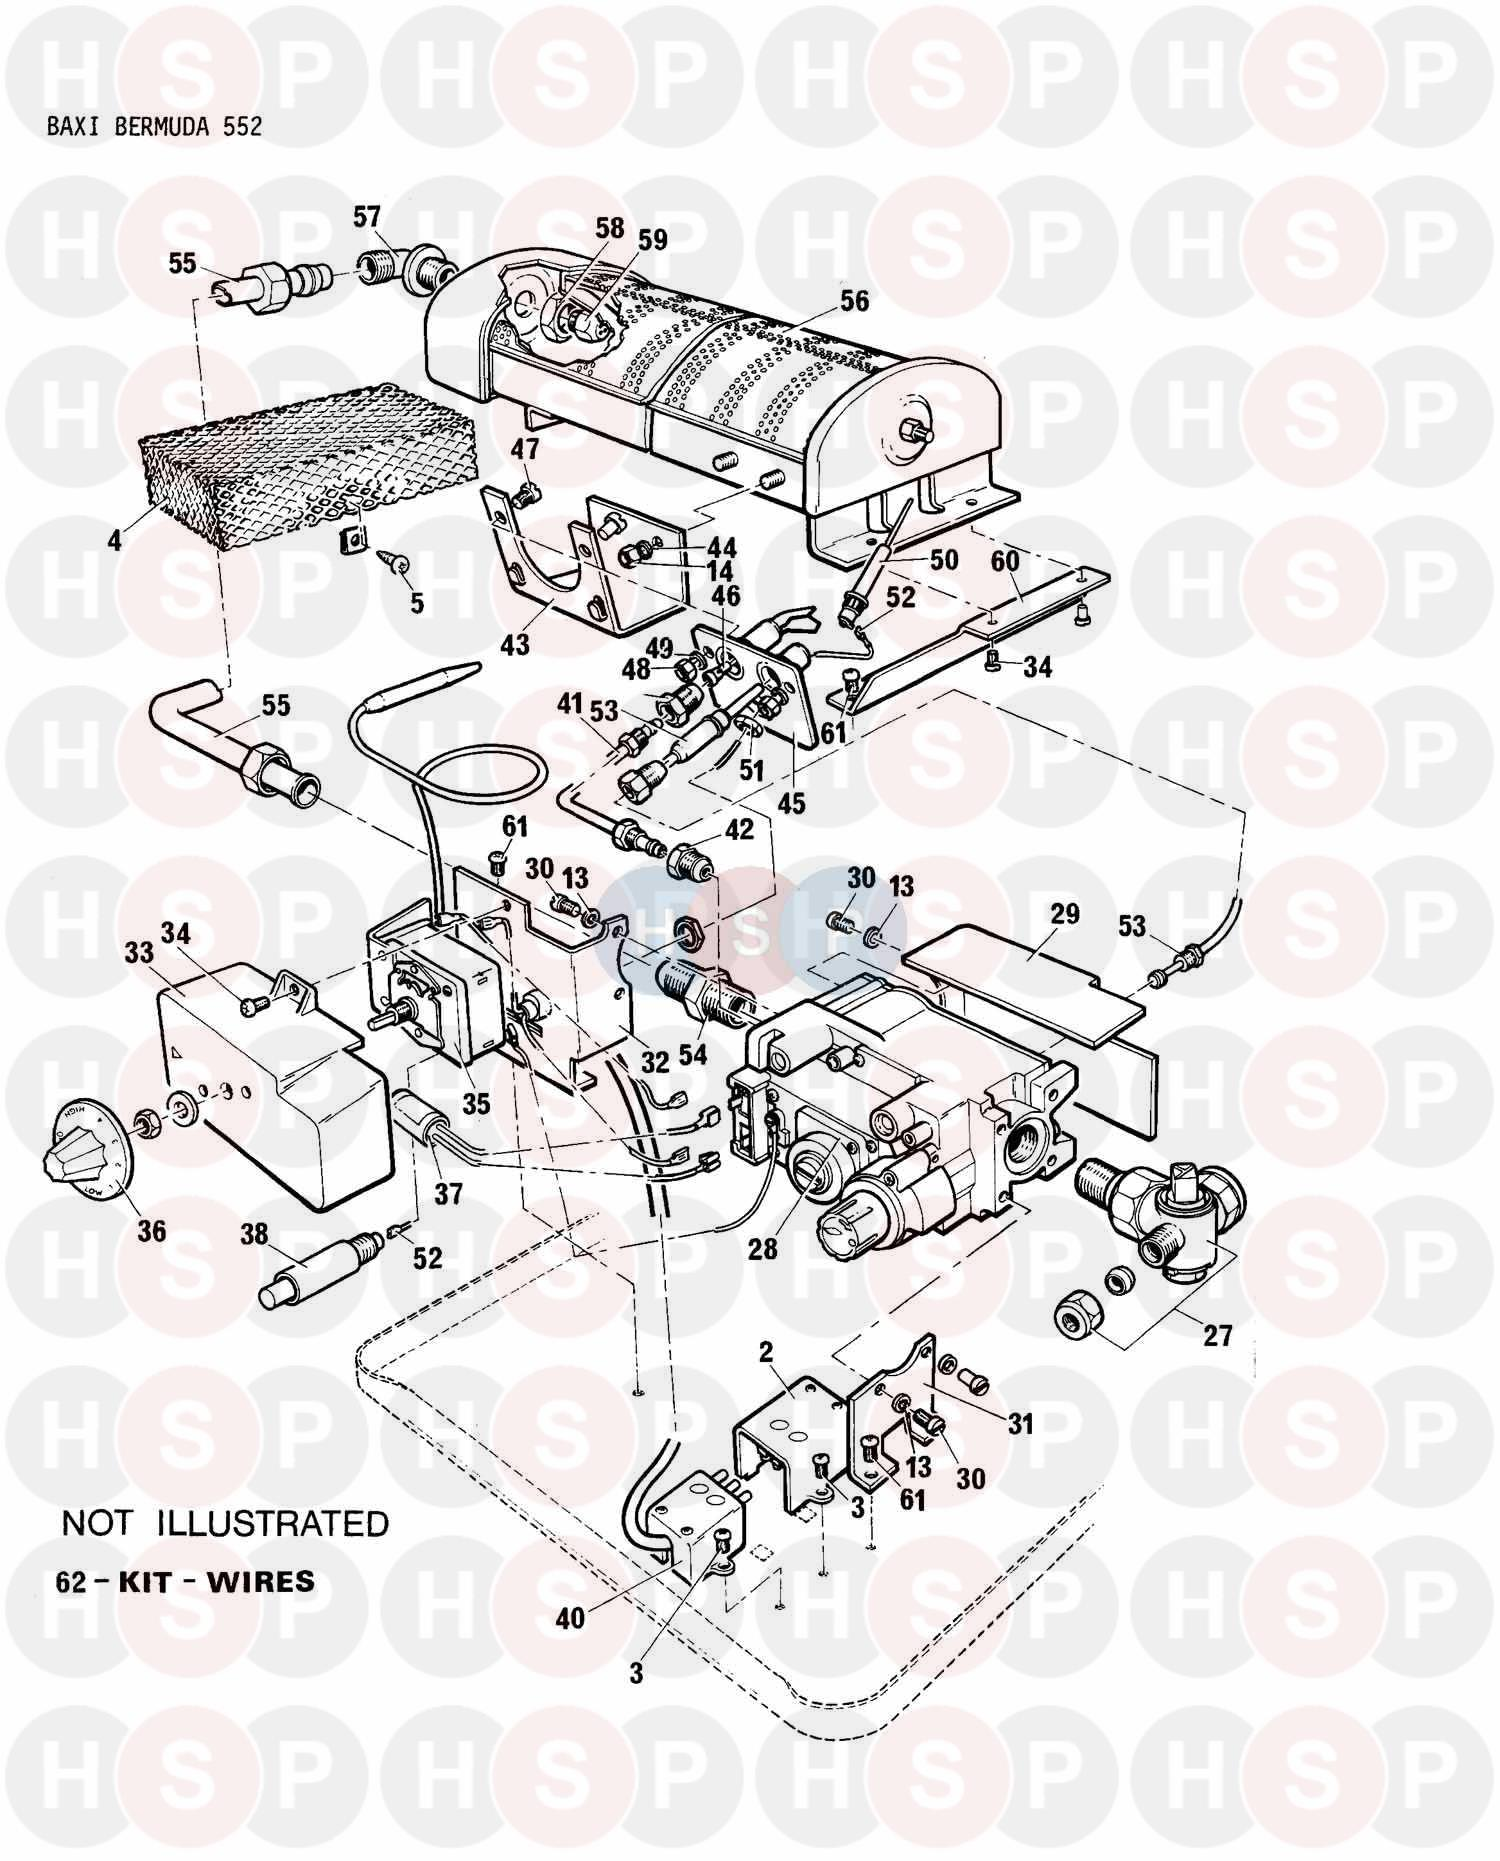 Baxi BERMUDA 552 LPG Appliance Diagram (Controls